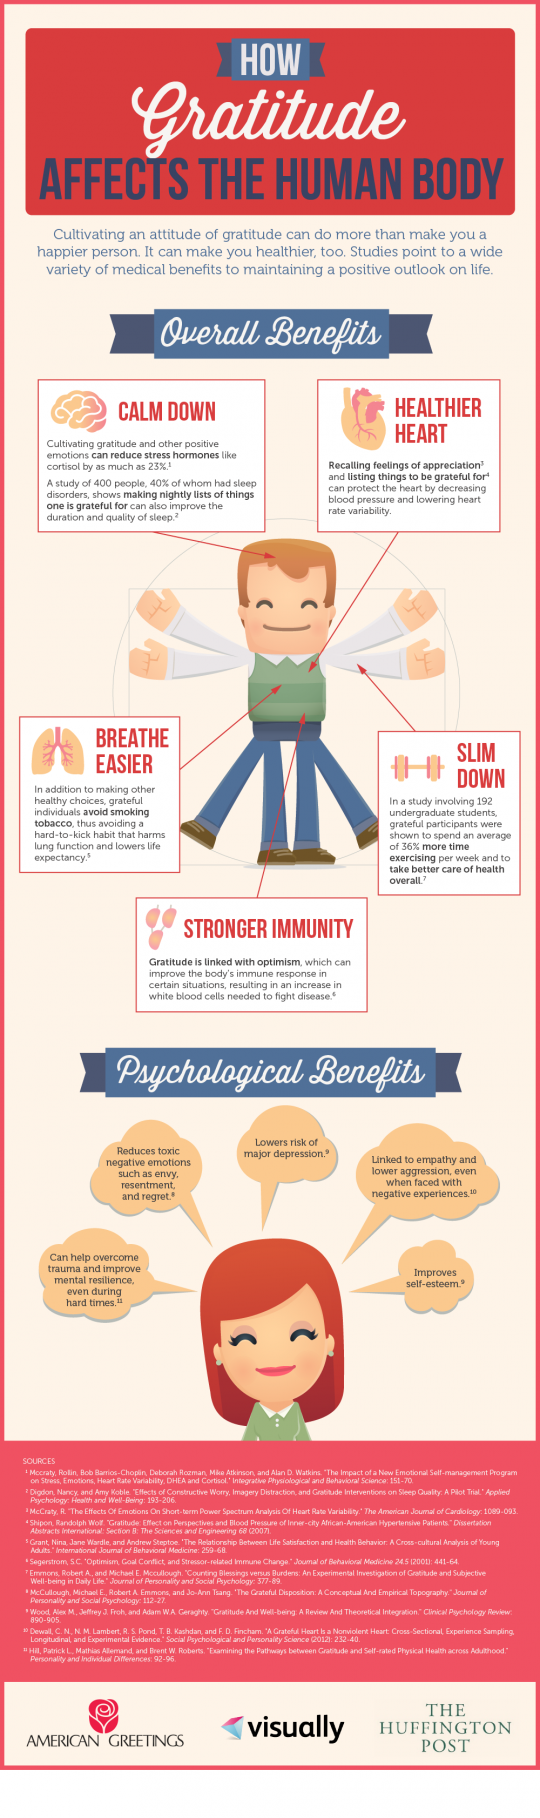 How Gratitude Affects the Human Body